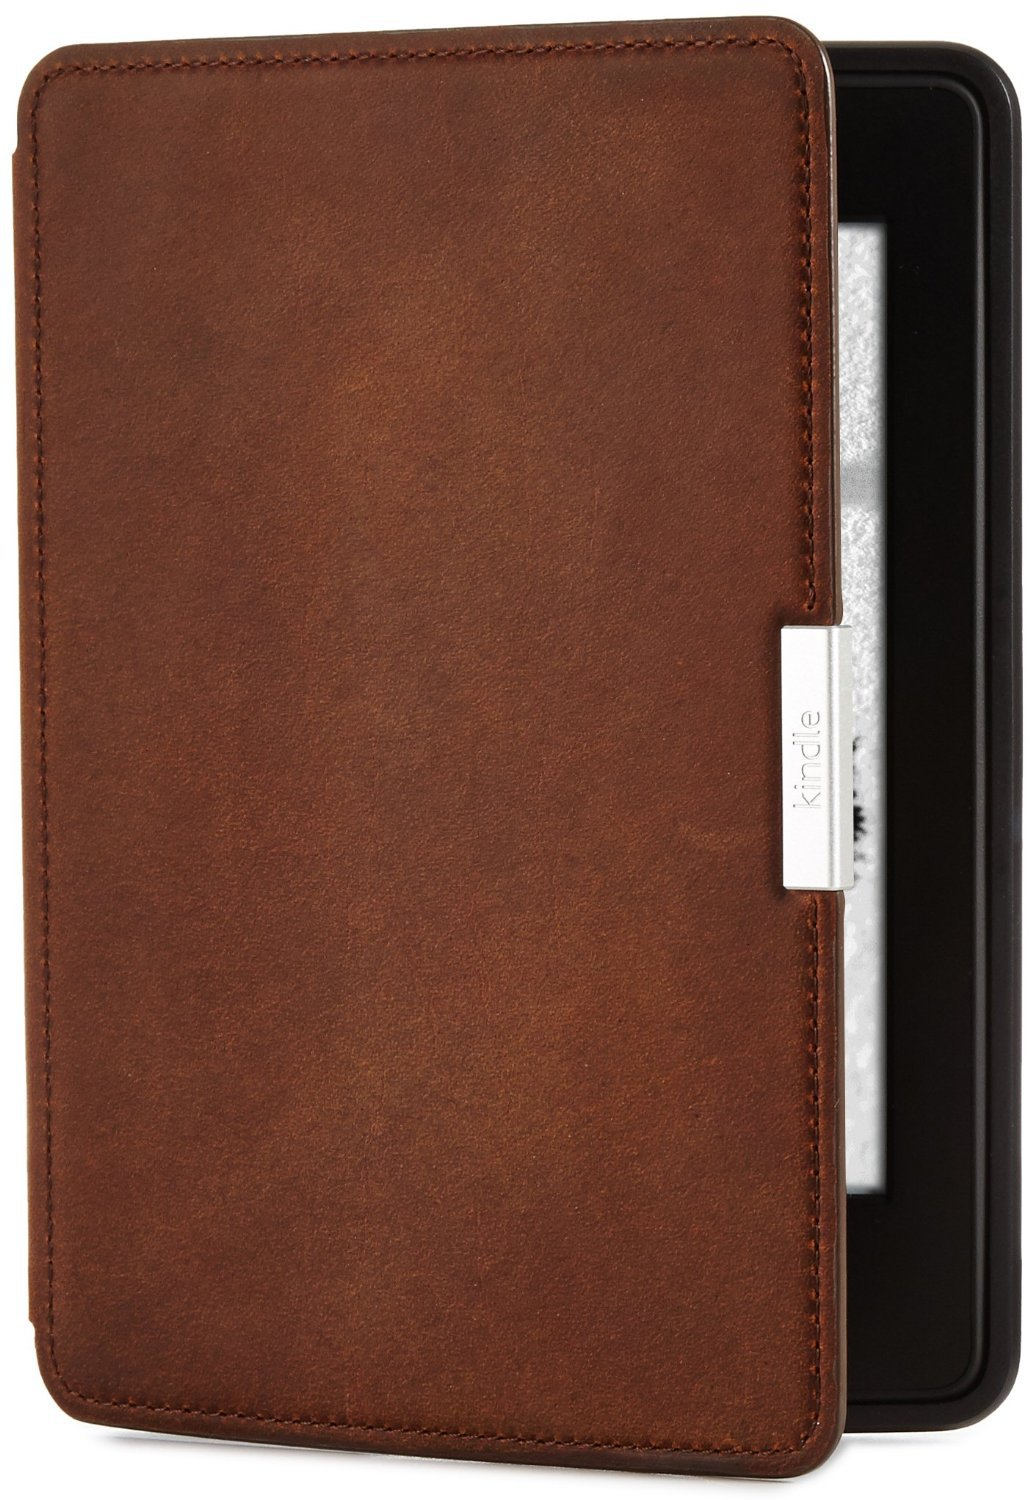 Чехол для Amazon Kindle PaperWhite Limited Edition Premium Leather Cover